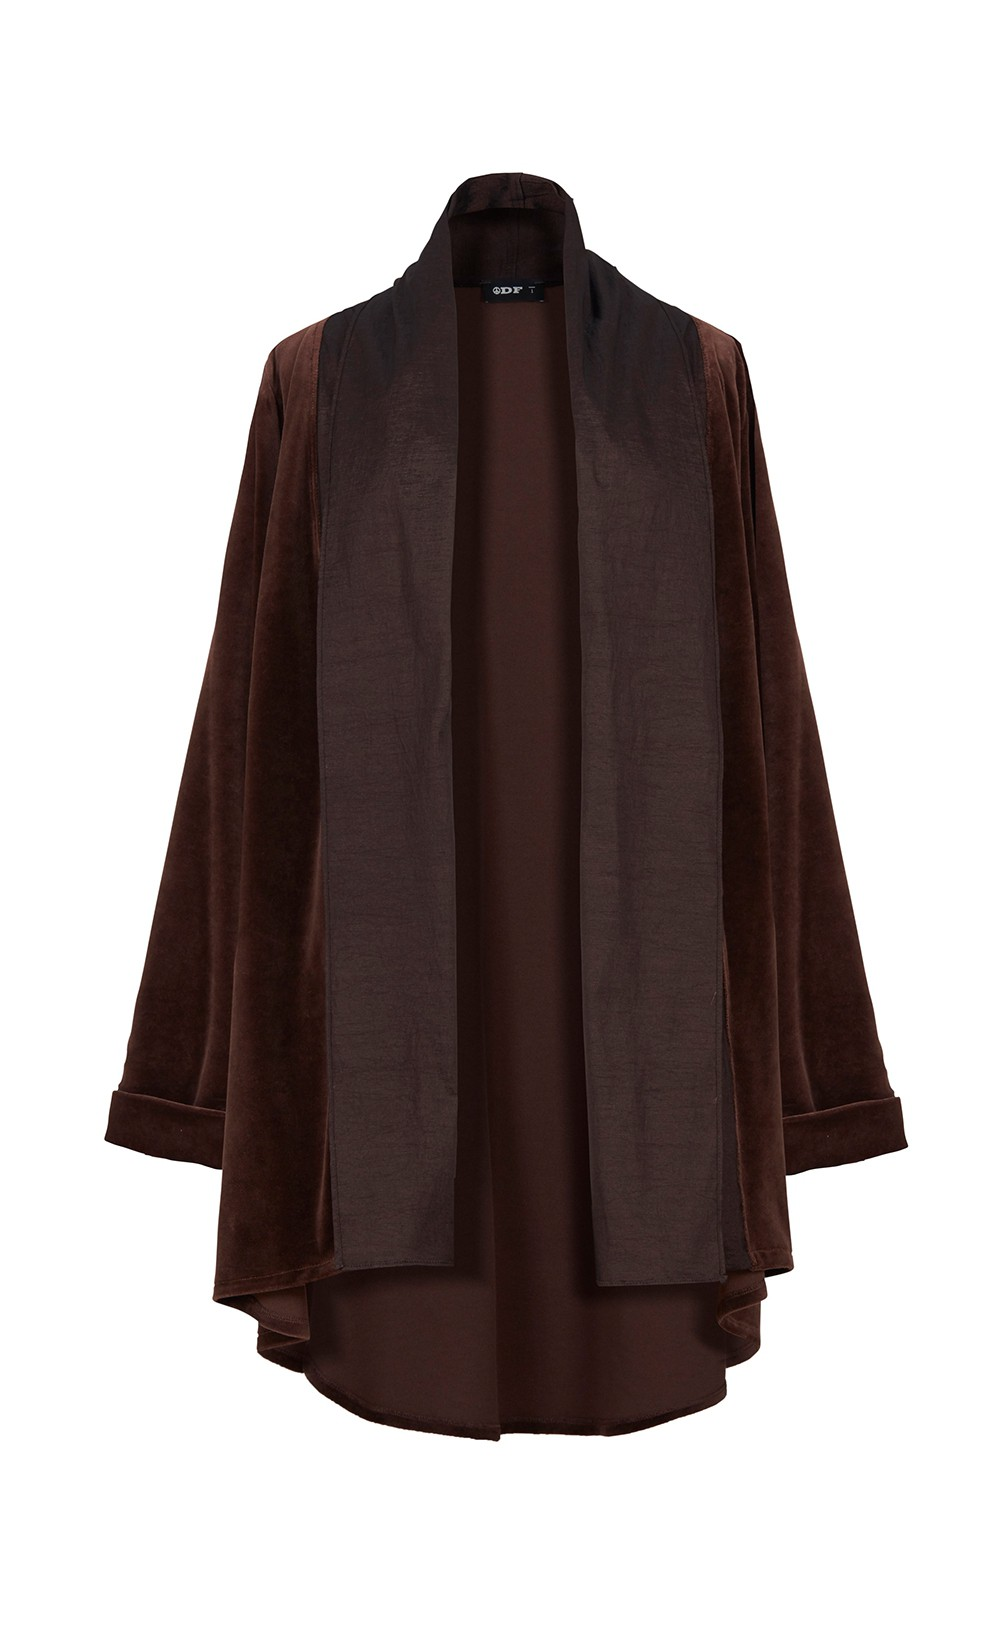 Dashar Cardigan